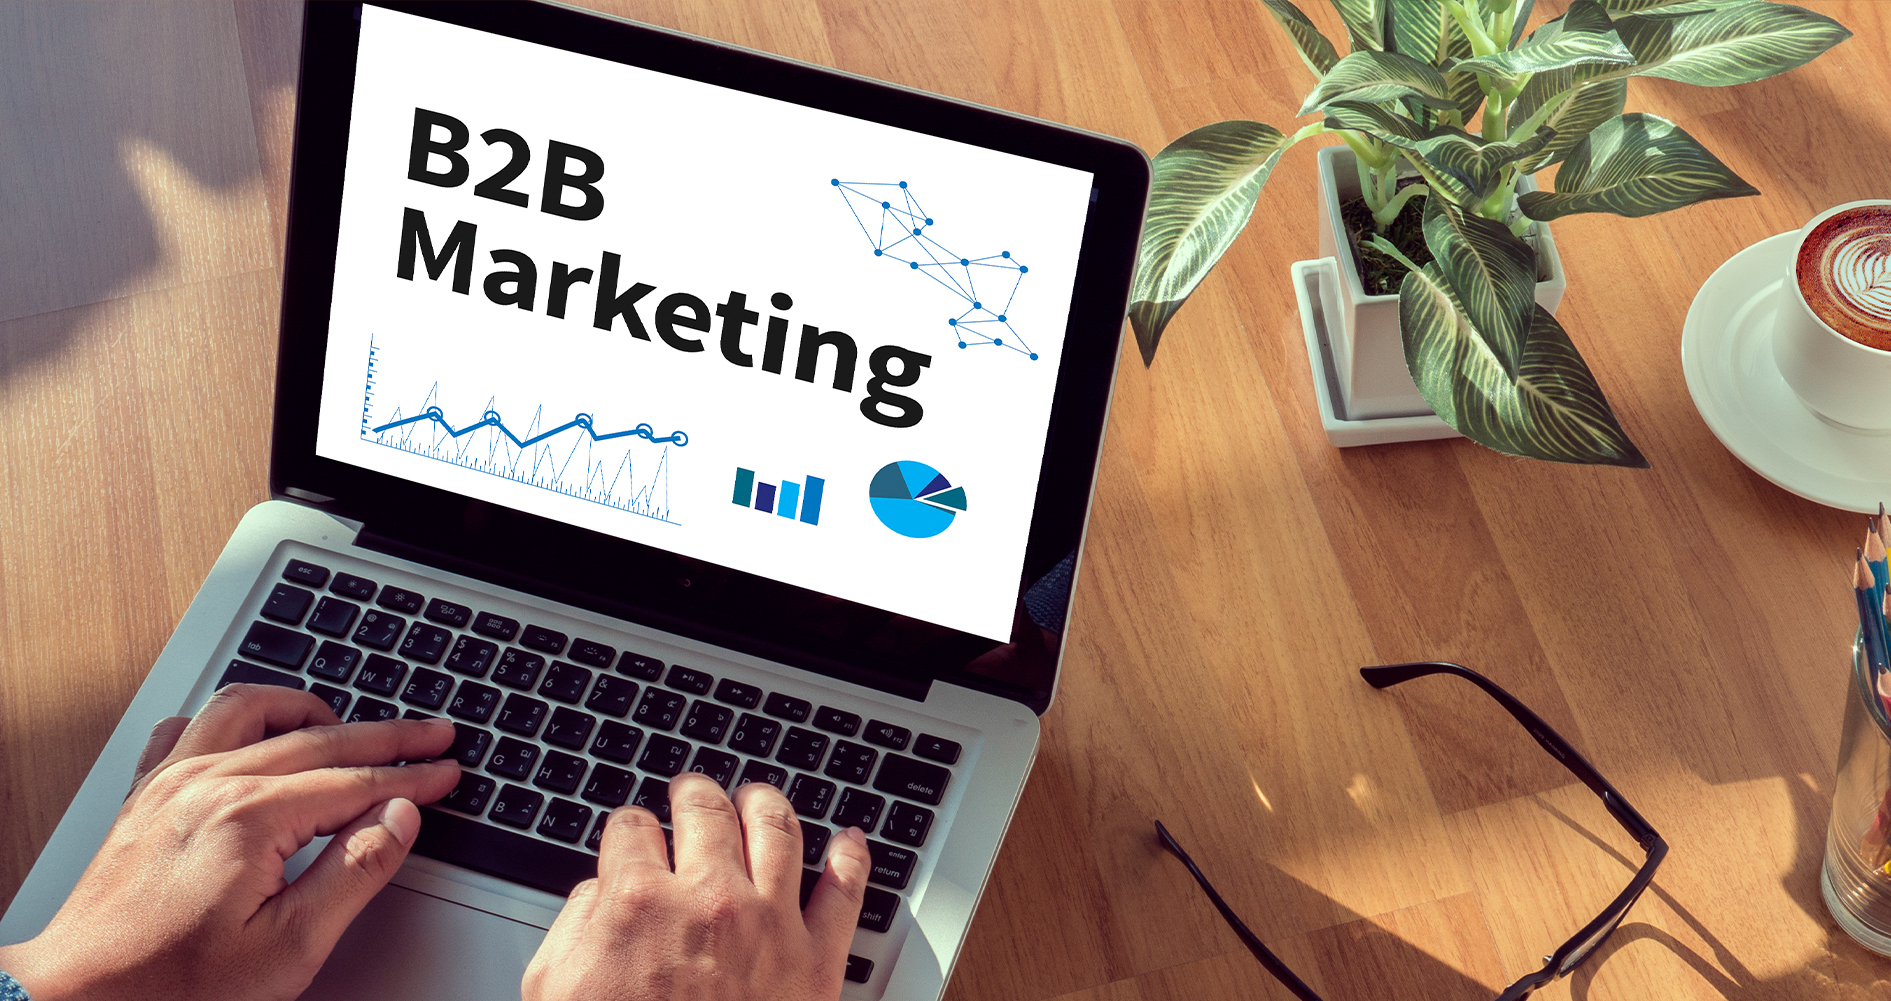 Estrategias más efectivas en marketing B2B